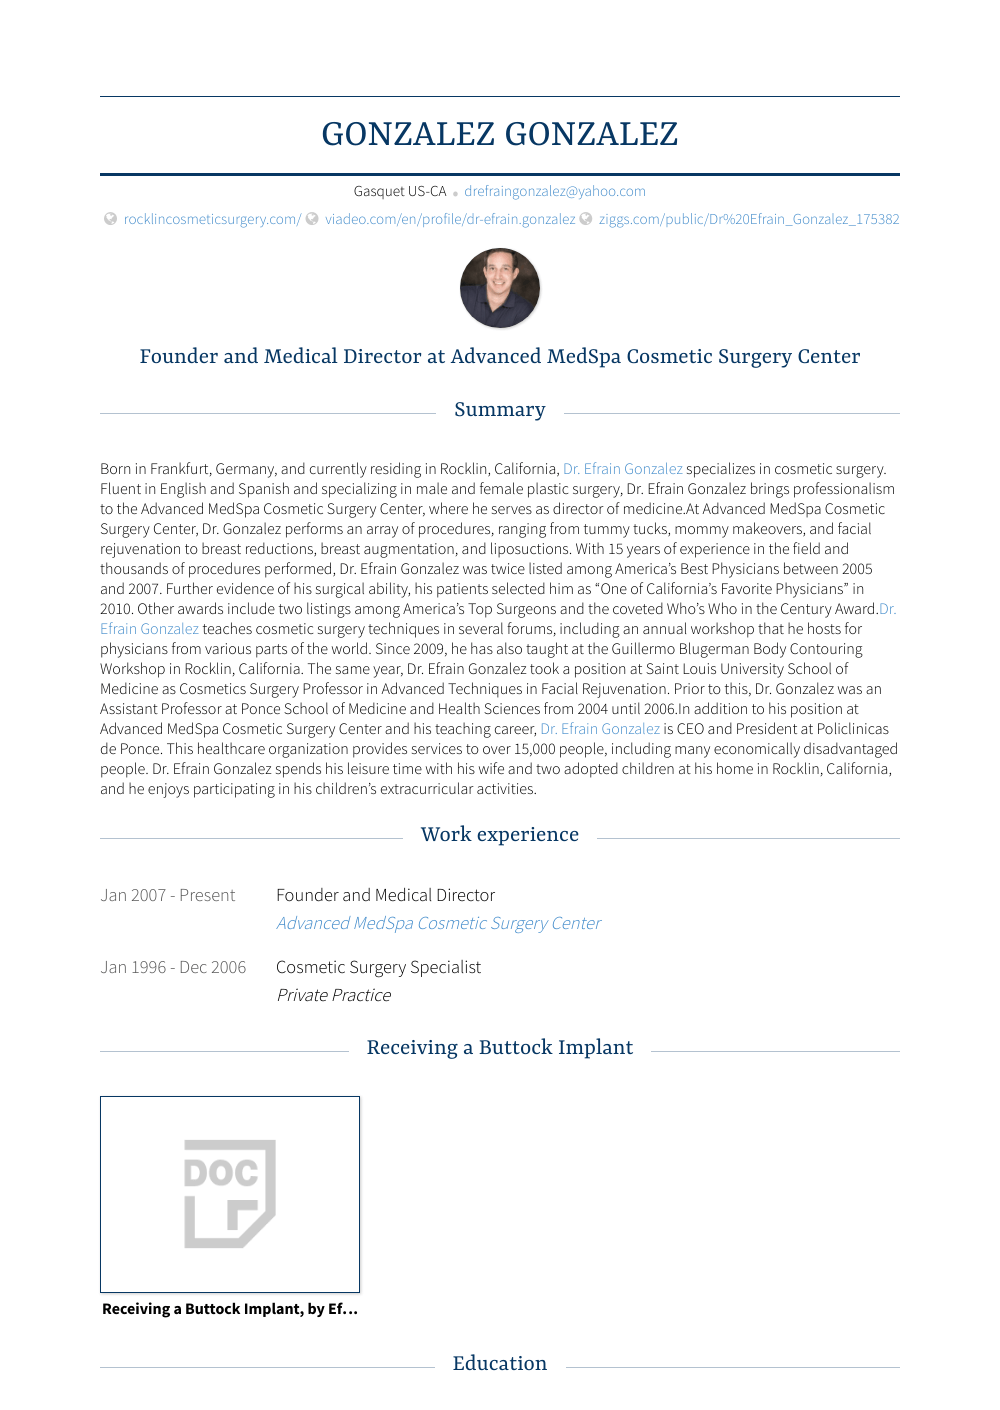 Founder And Medical Director Resume Sample